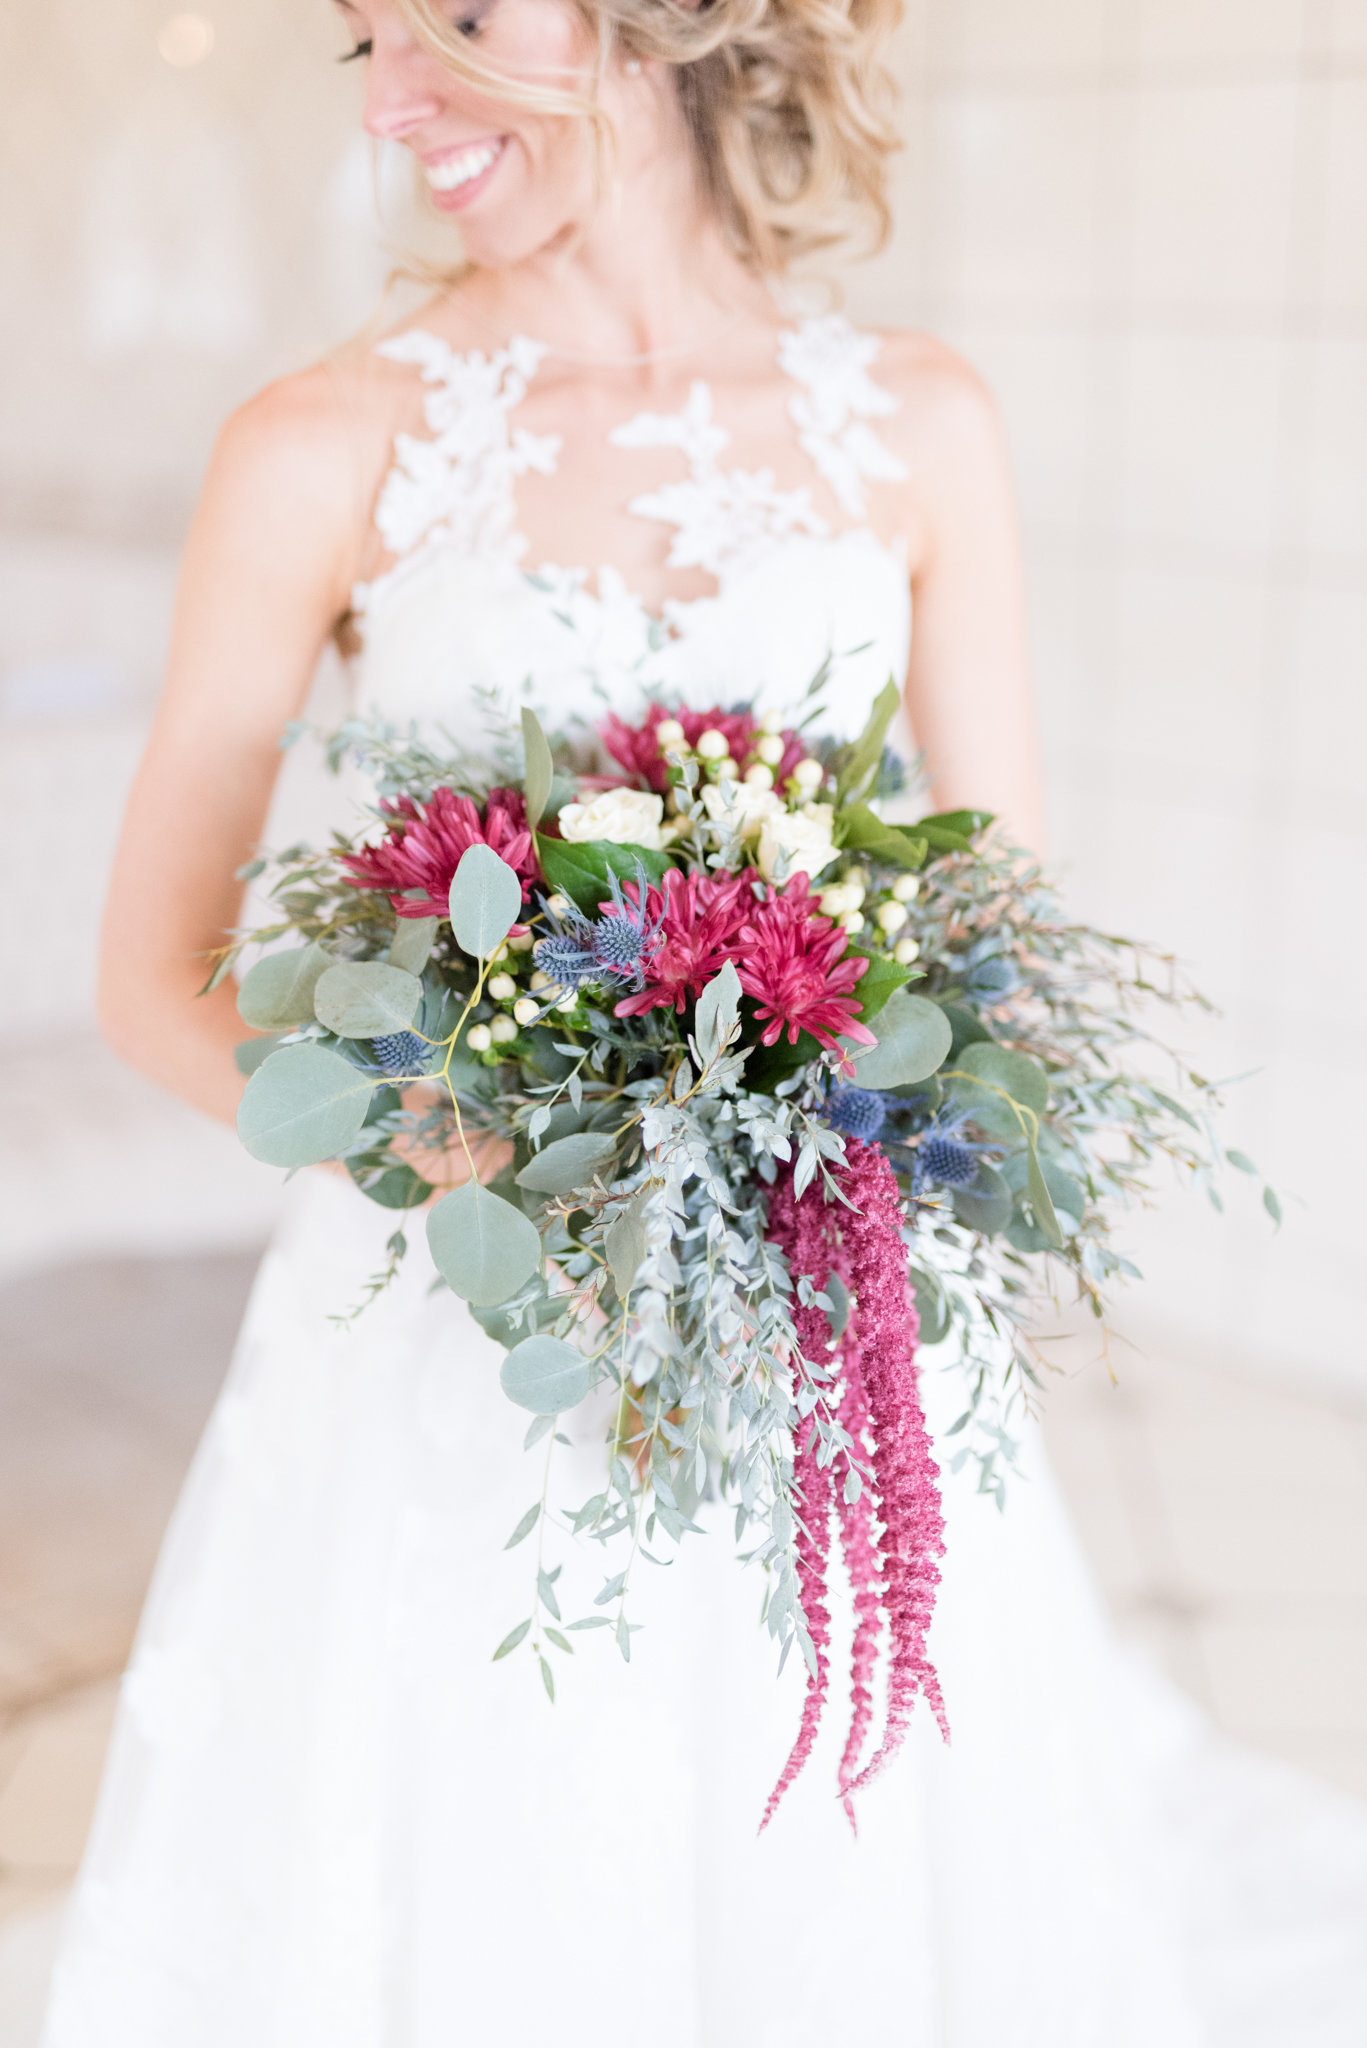 Bride holds Pink and cream wedding bouquet.